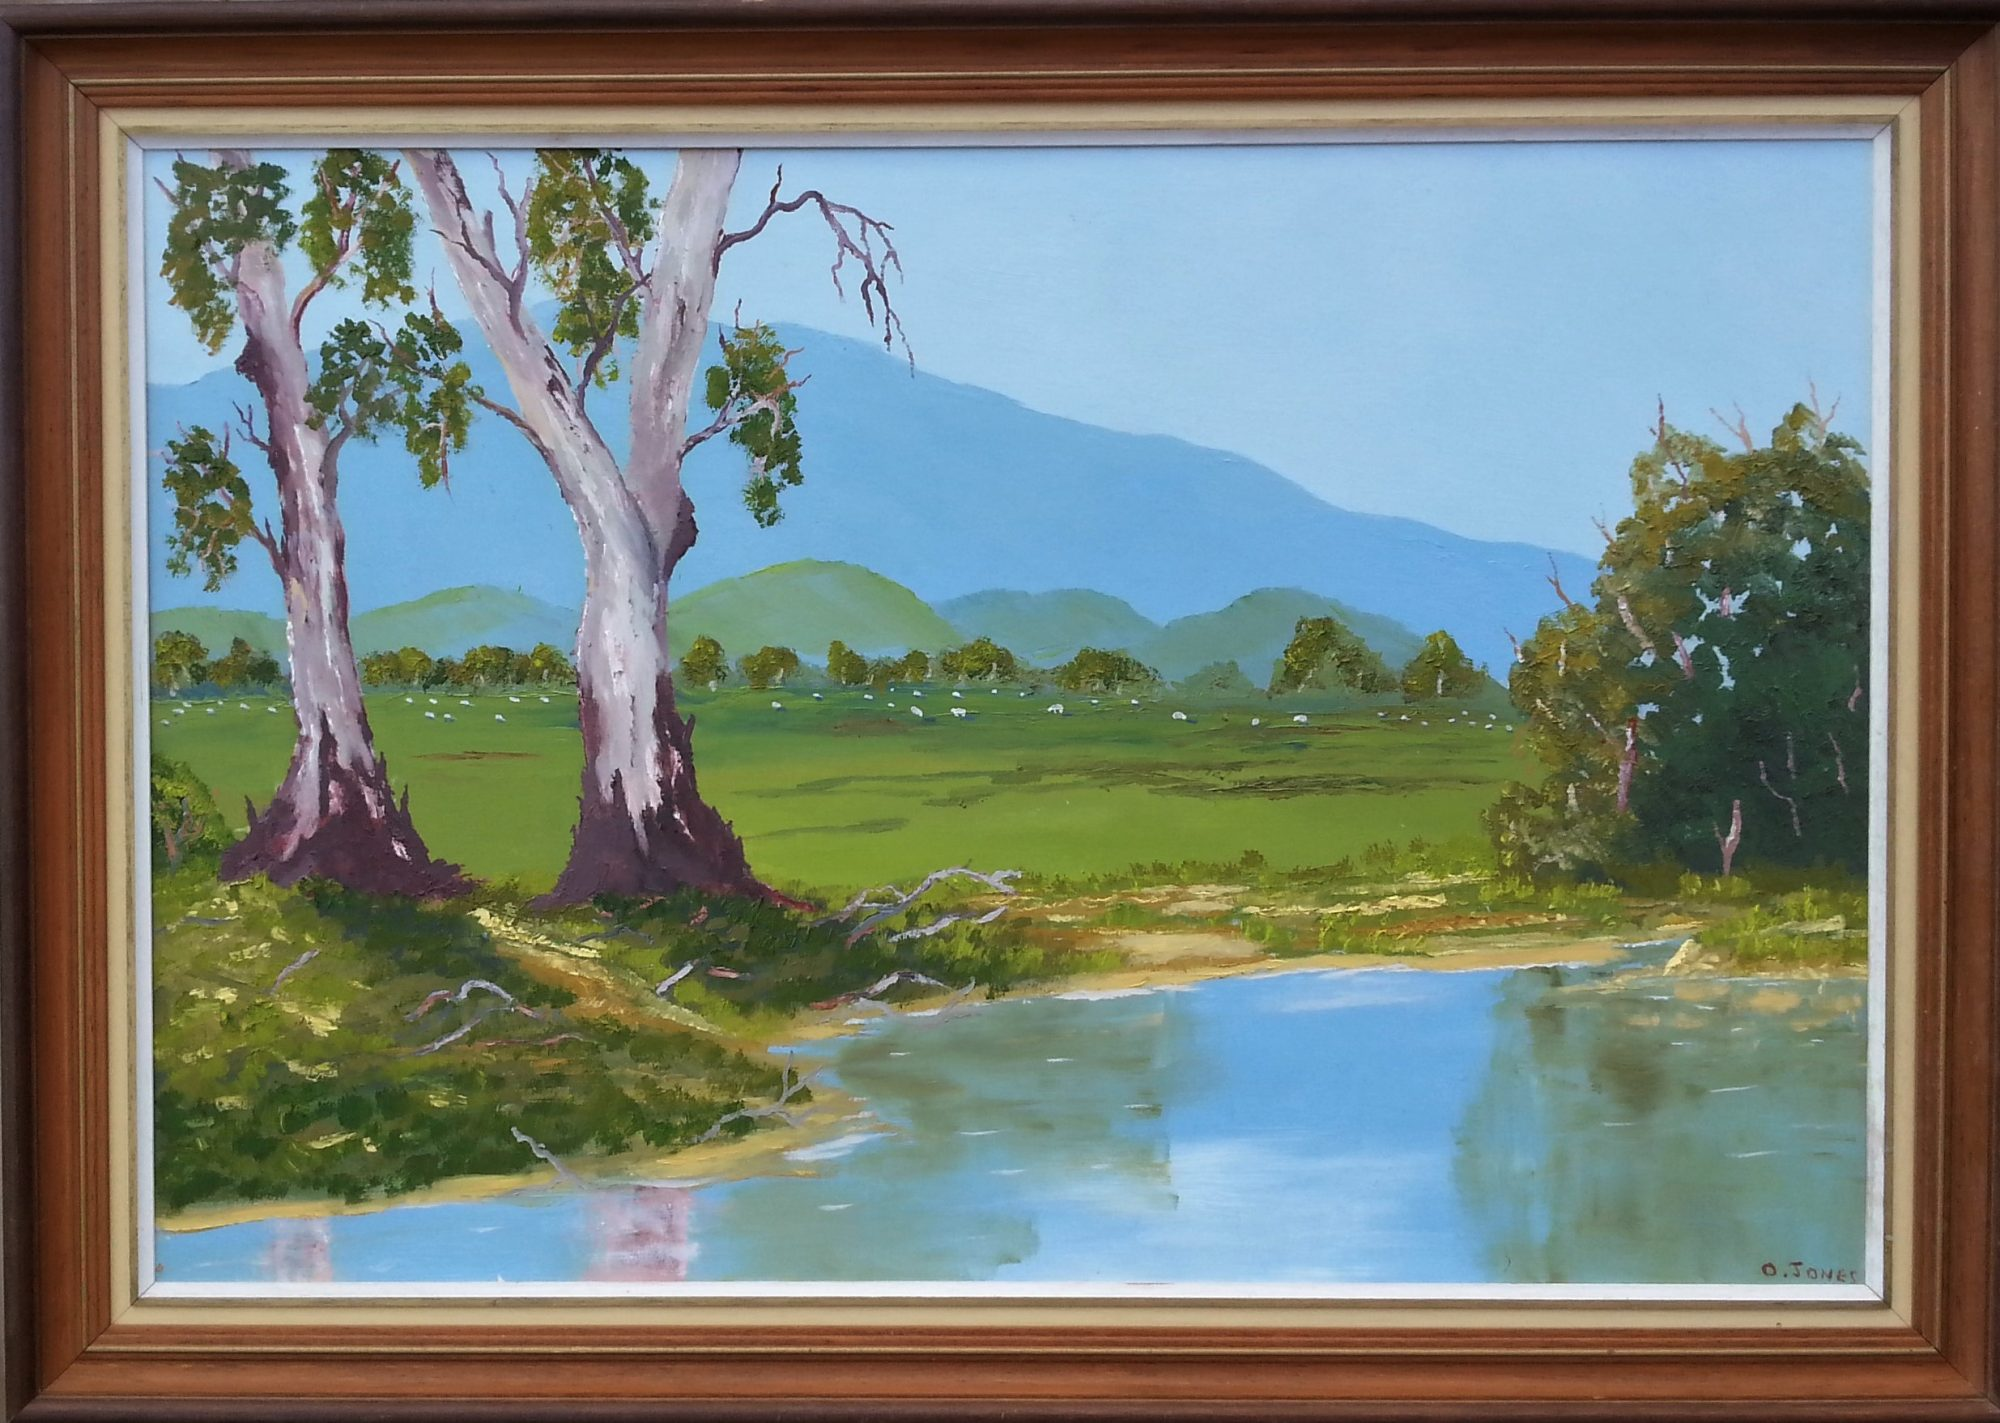 GUM TREES BY THE WATER HOLE